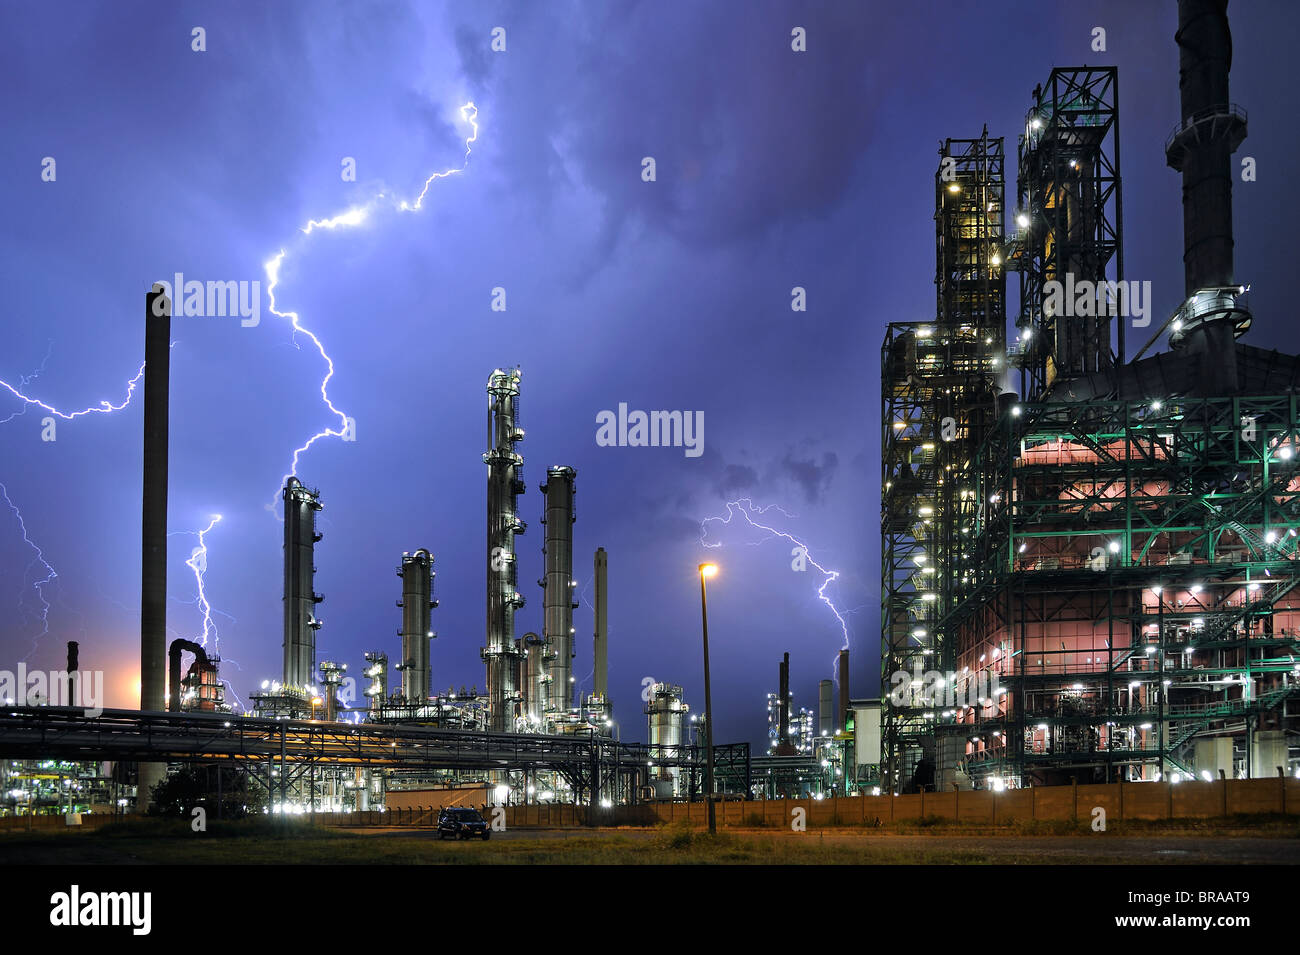 Lightning during thunderstorm above petrochemical industry in the Antwerp harbour, Belgium - Stock Image